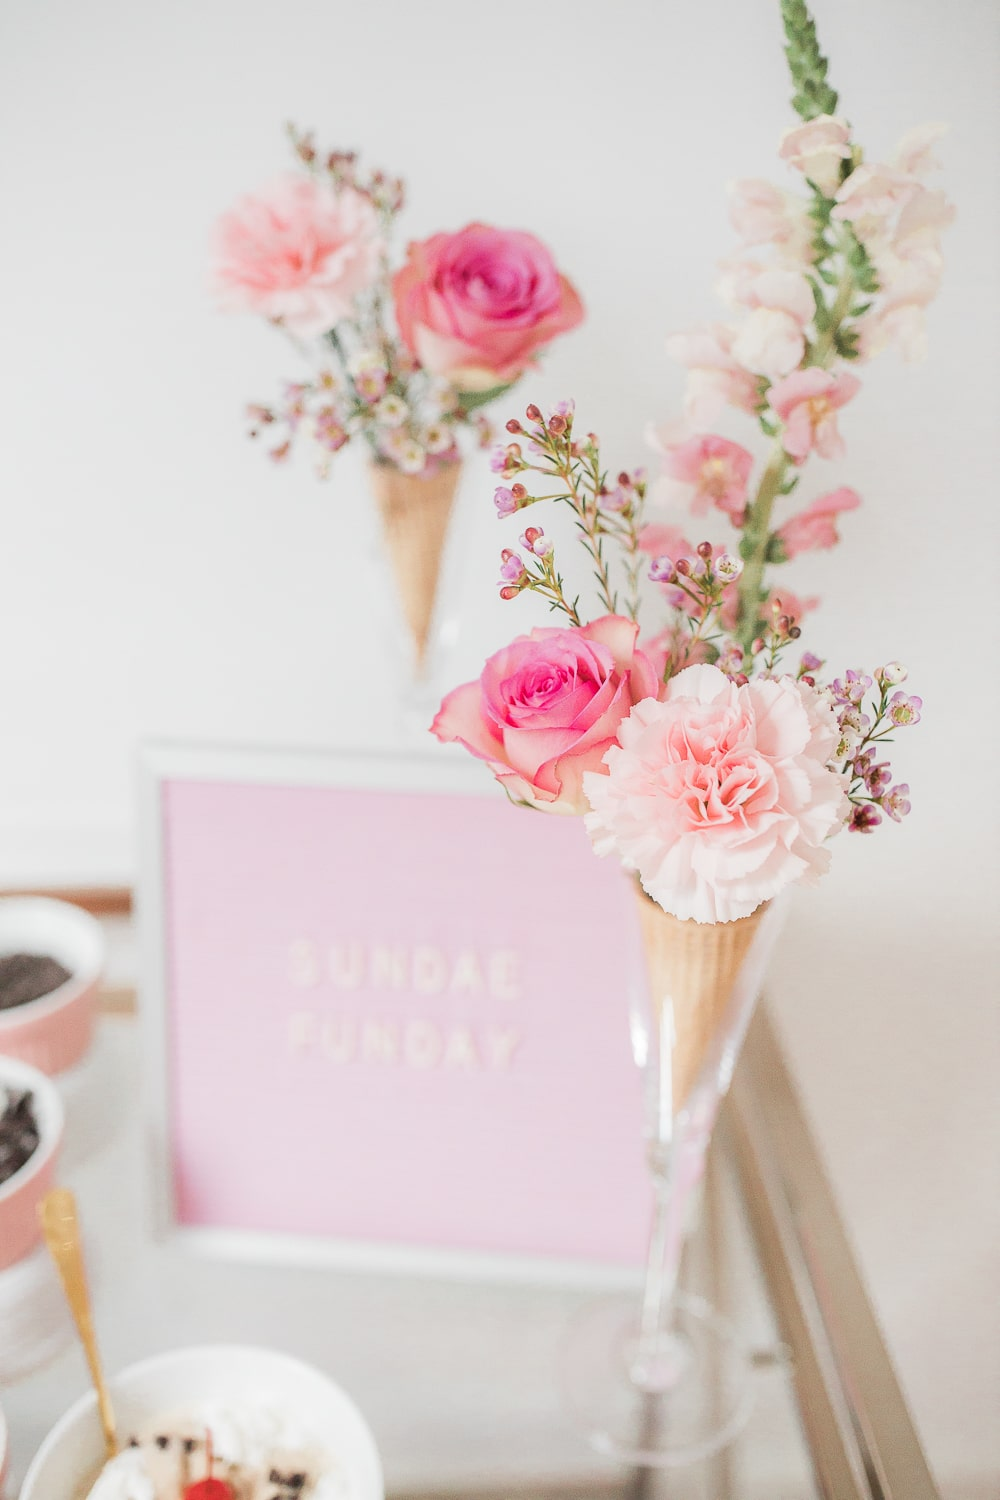 Ice cream cone floral arrangement created by blogger Stephanie Ziajka on Diary of a Debutante